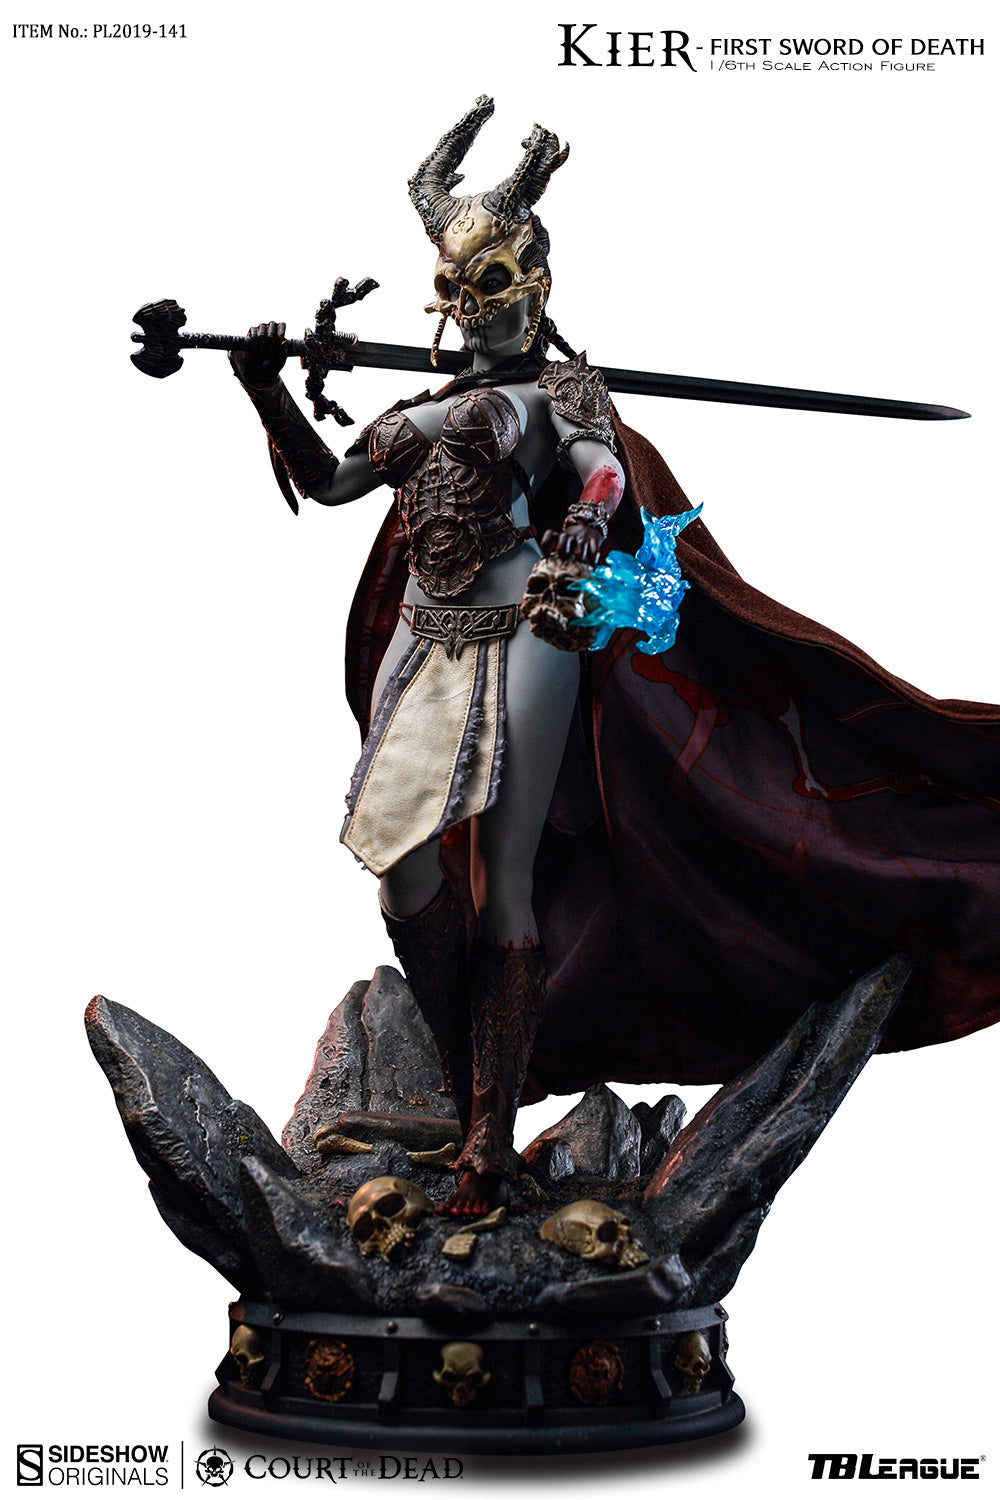 Phicen TBLeague Kier - First Sword of Death 1/6 Action Figure